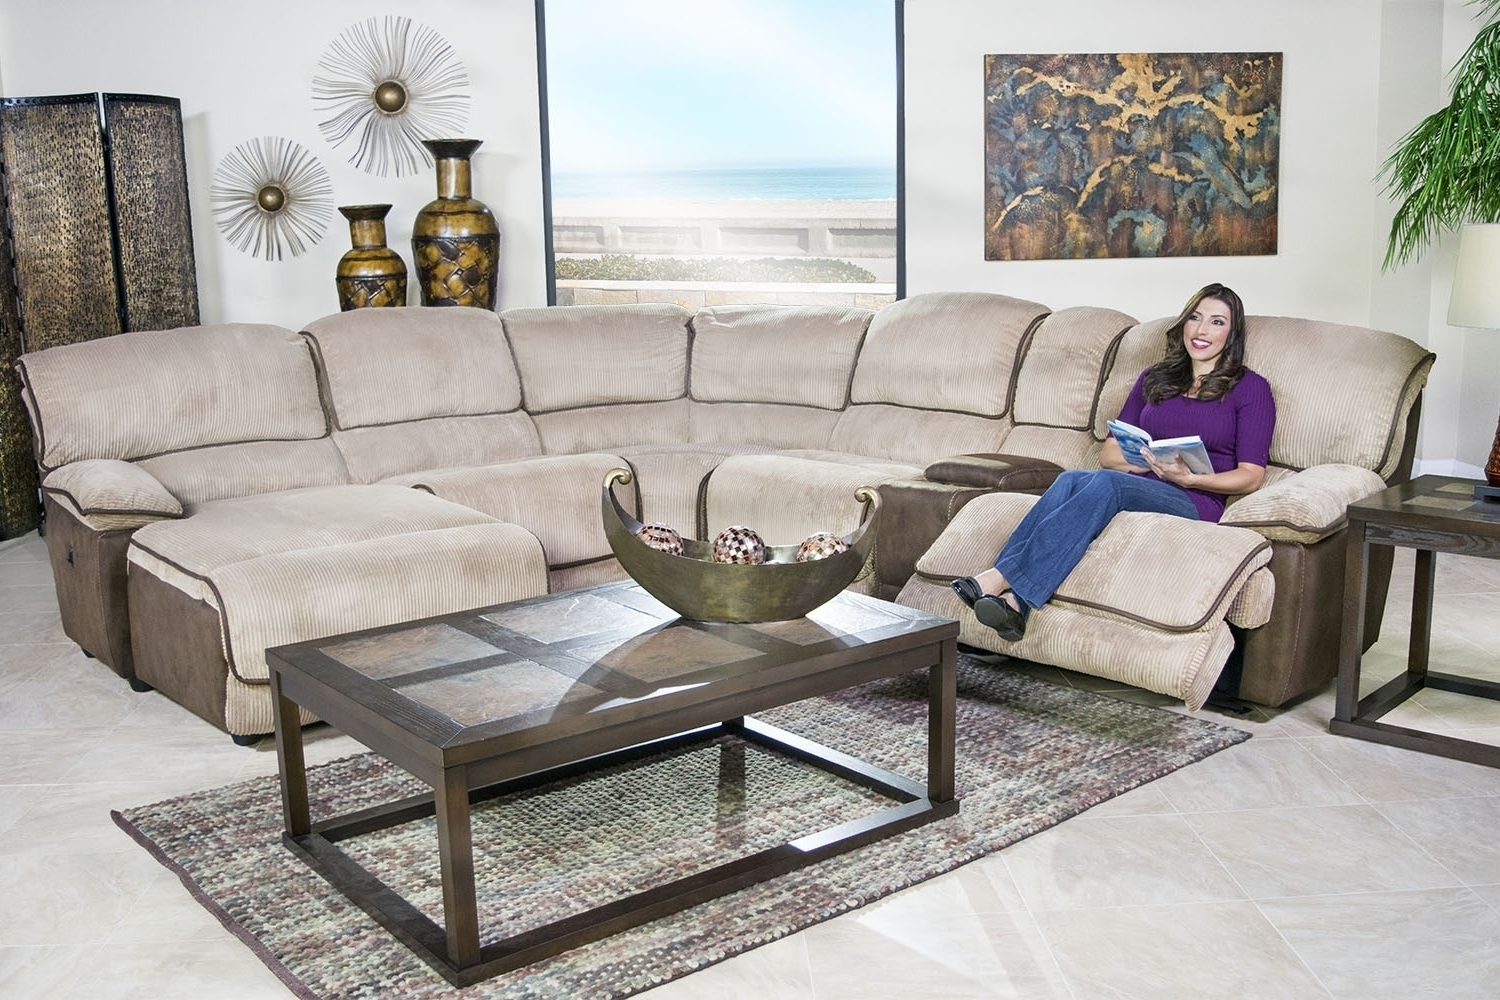 Widely Used Awesome Sectional Sofa Austin – Buildsimplehome In Sectional Sofas At Austin (View 14 of 20)